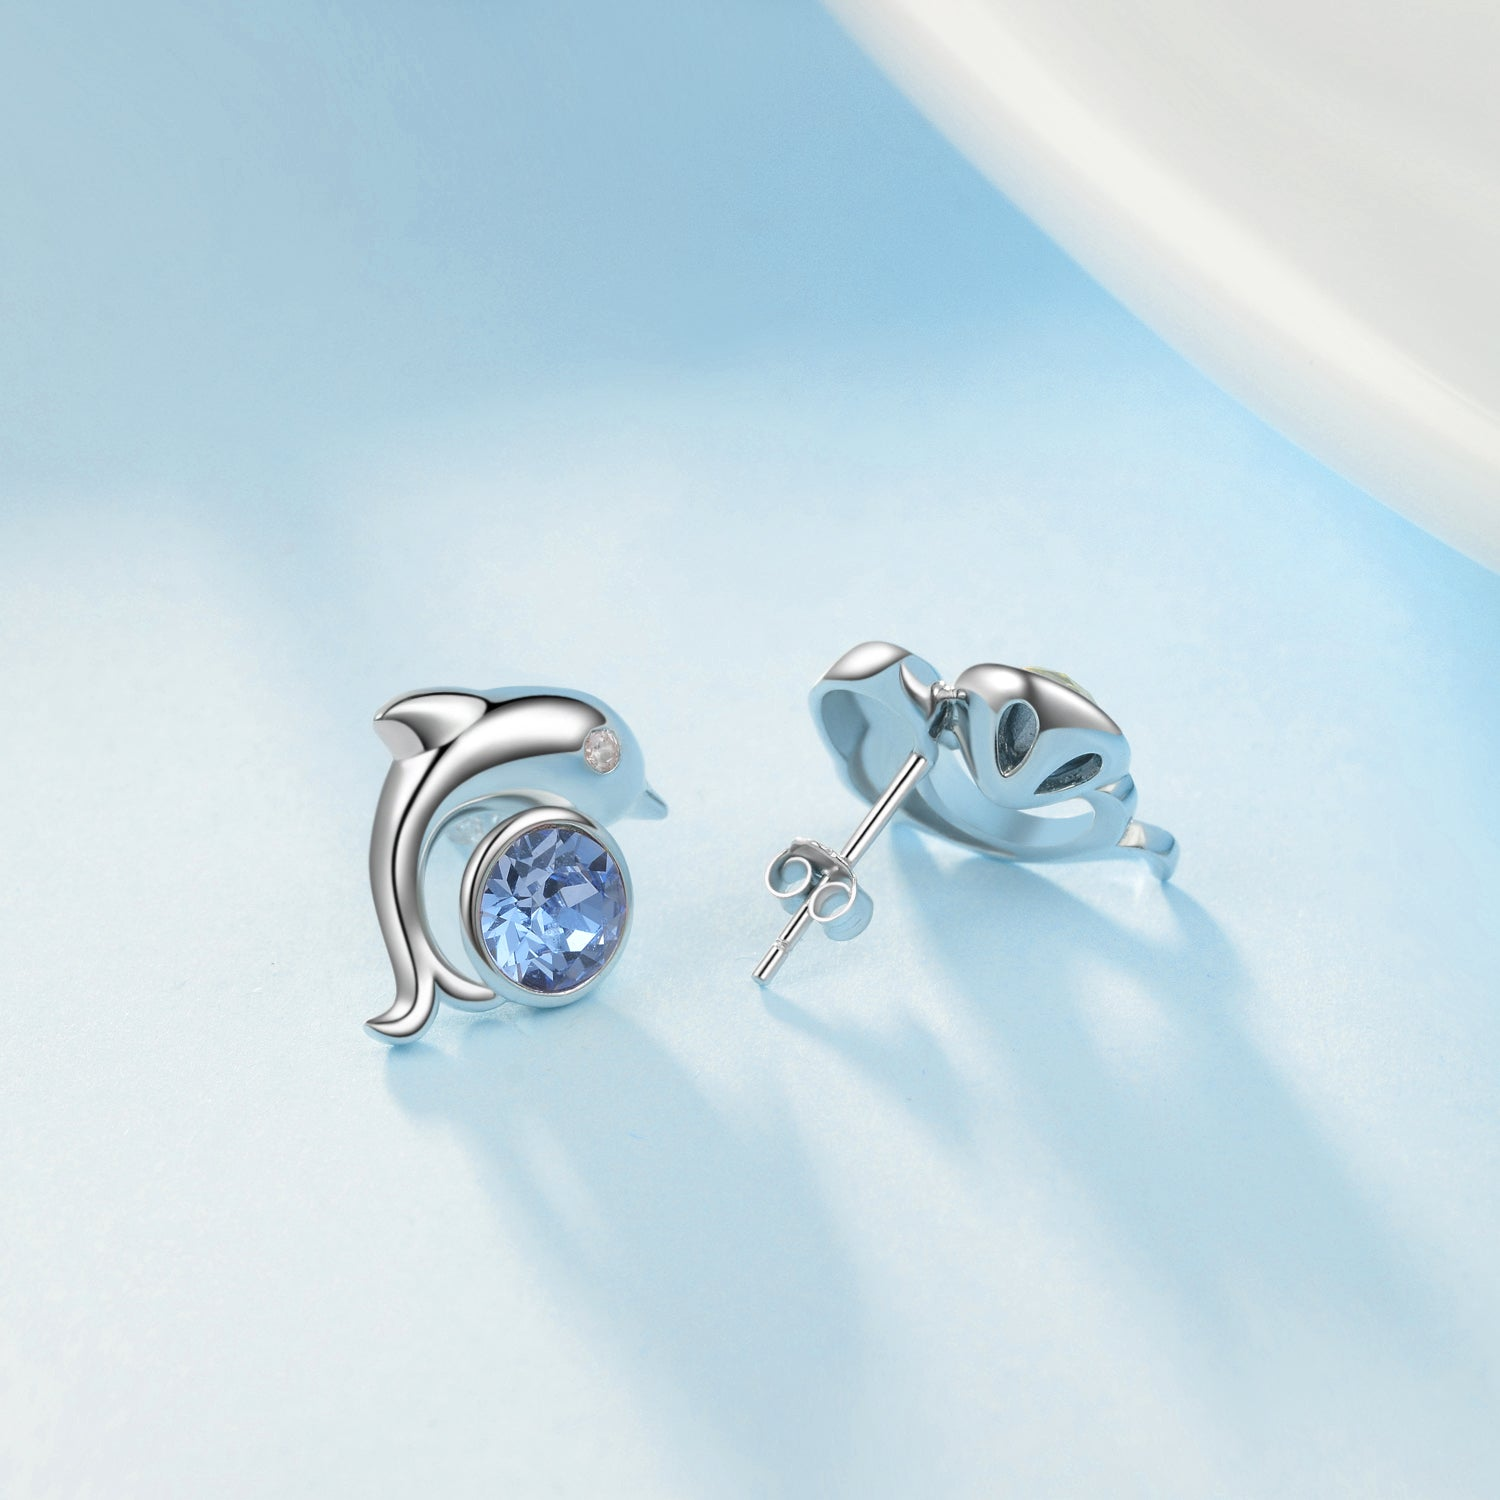 Crystal  Dolphin Stud Earrings Animal Mini Jewelry Silver Design Necklace